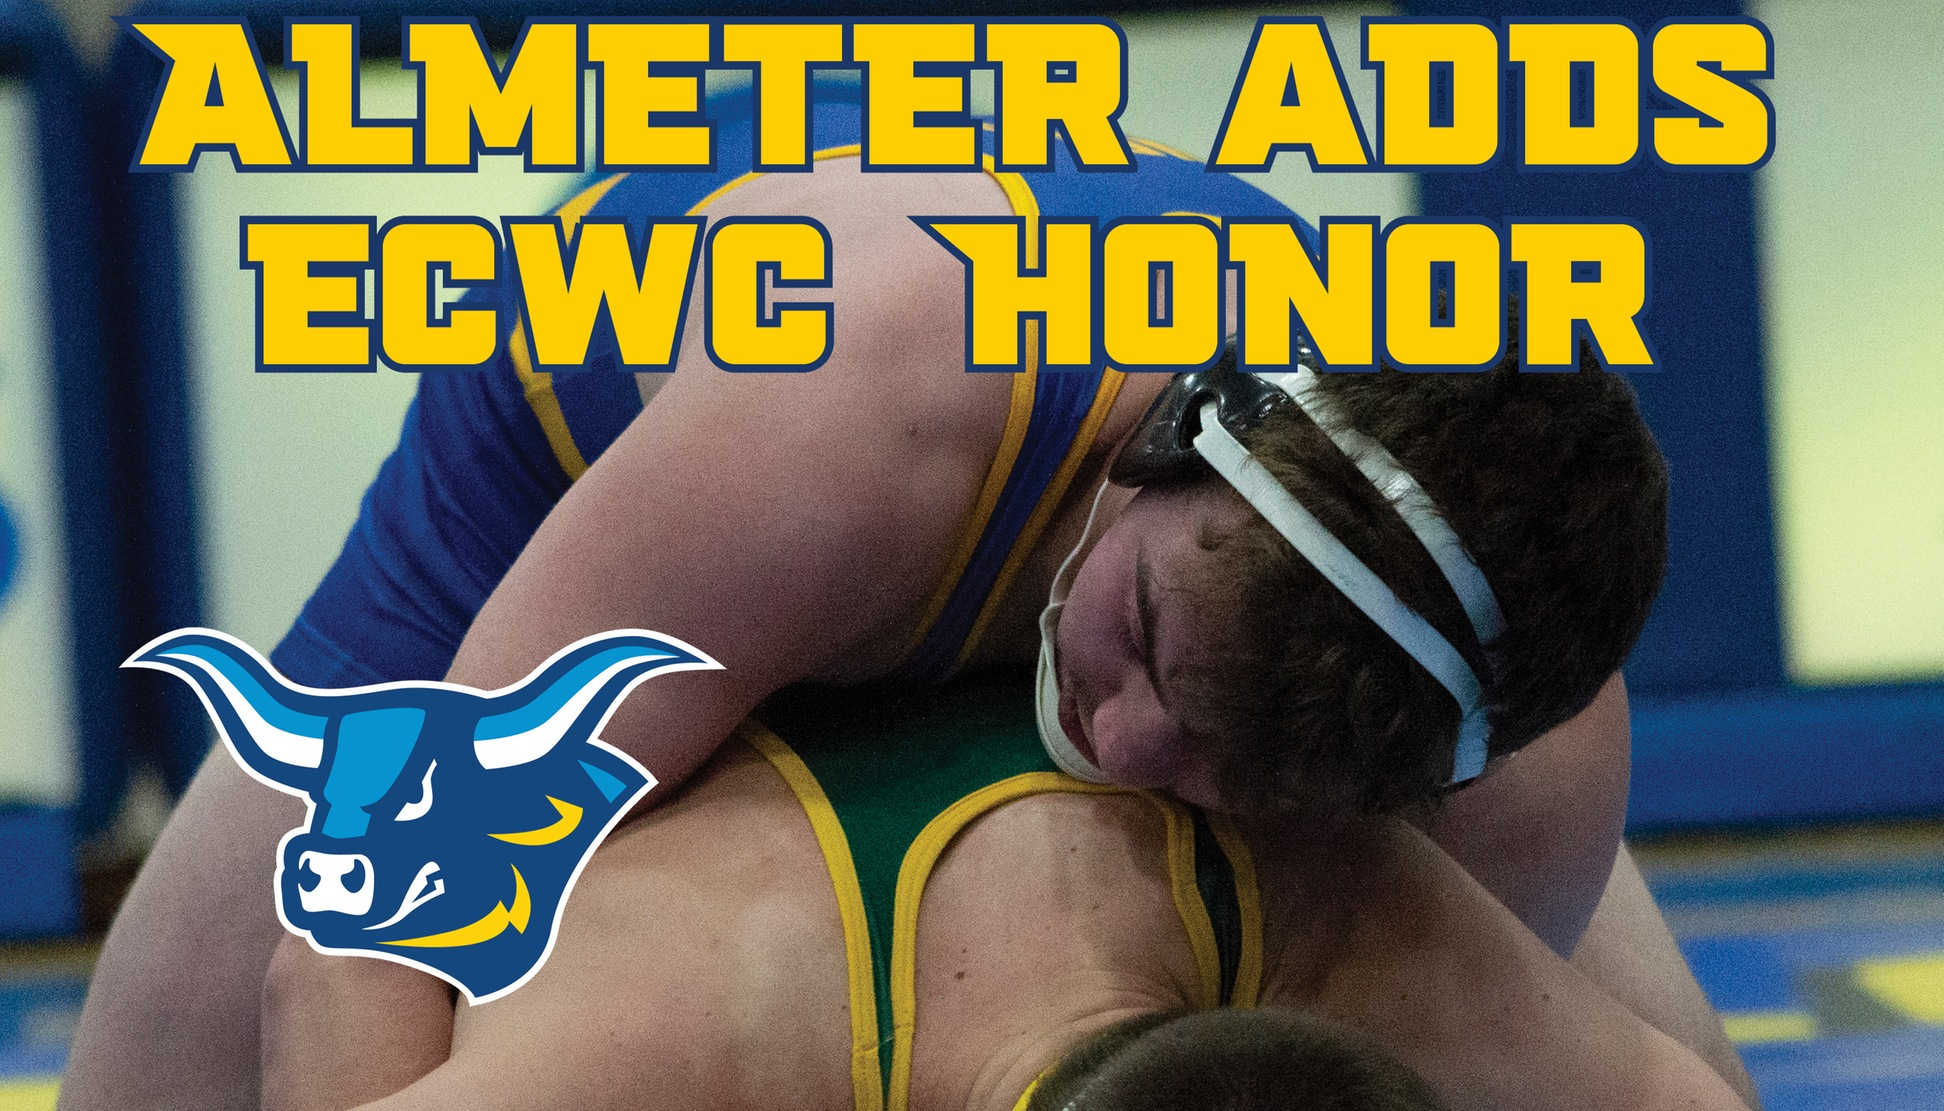 Tristan Almeter Named ECWC Wrestler of the Week